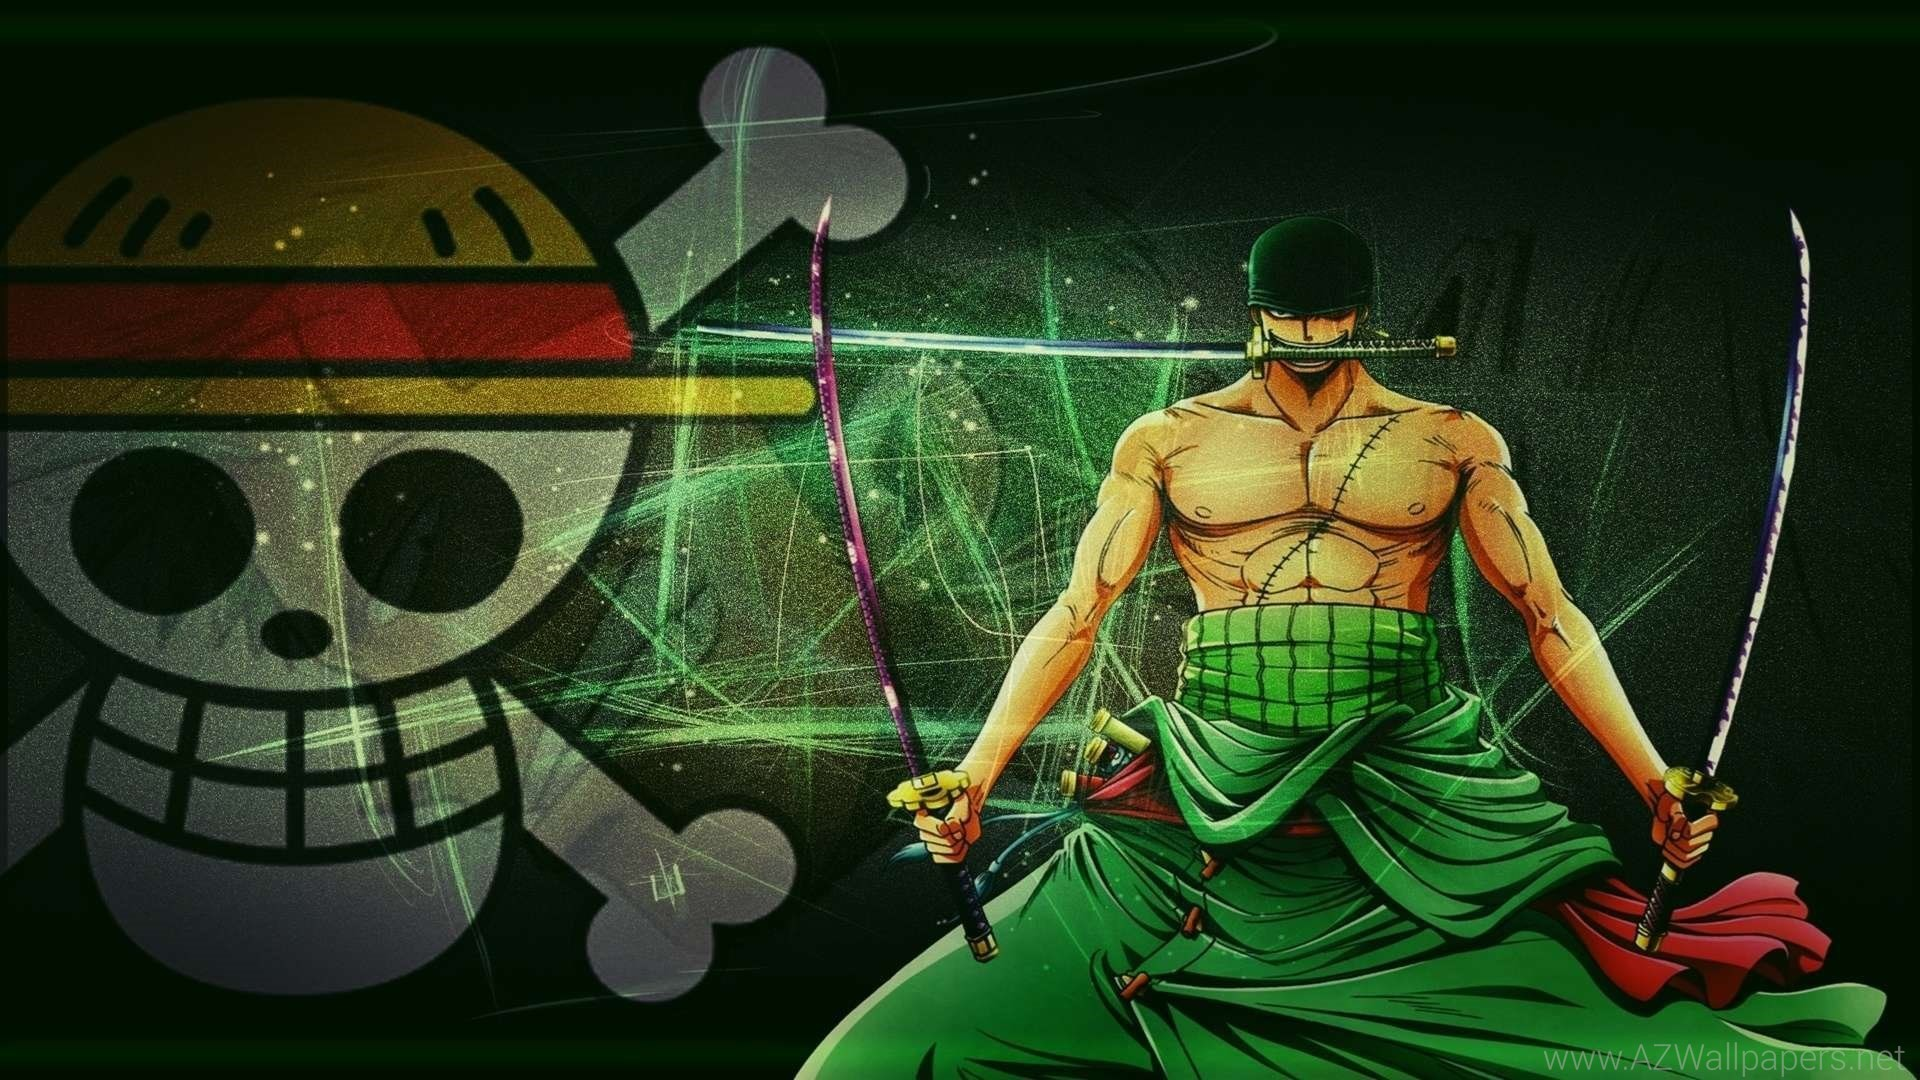 Zoro Hd Wallpapers For Mobile